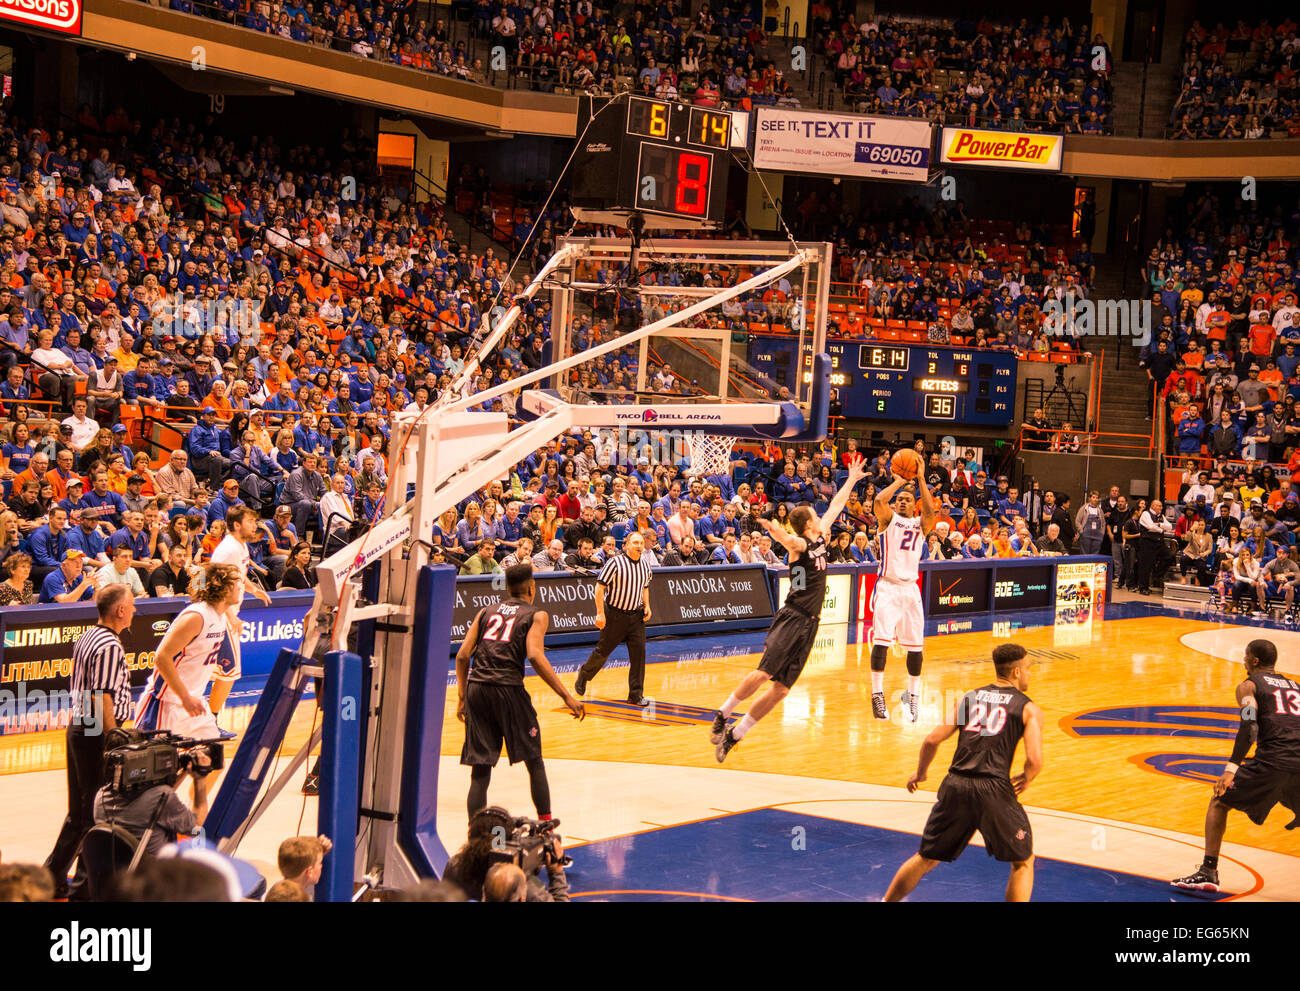 Boise State Basketball match contre San Diego State à Taco Bell Arena. Bose, New York Photo Stock